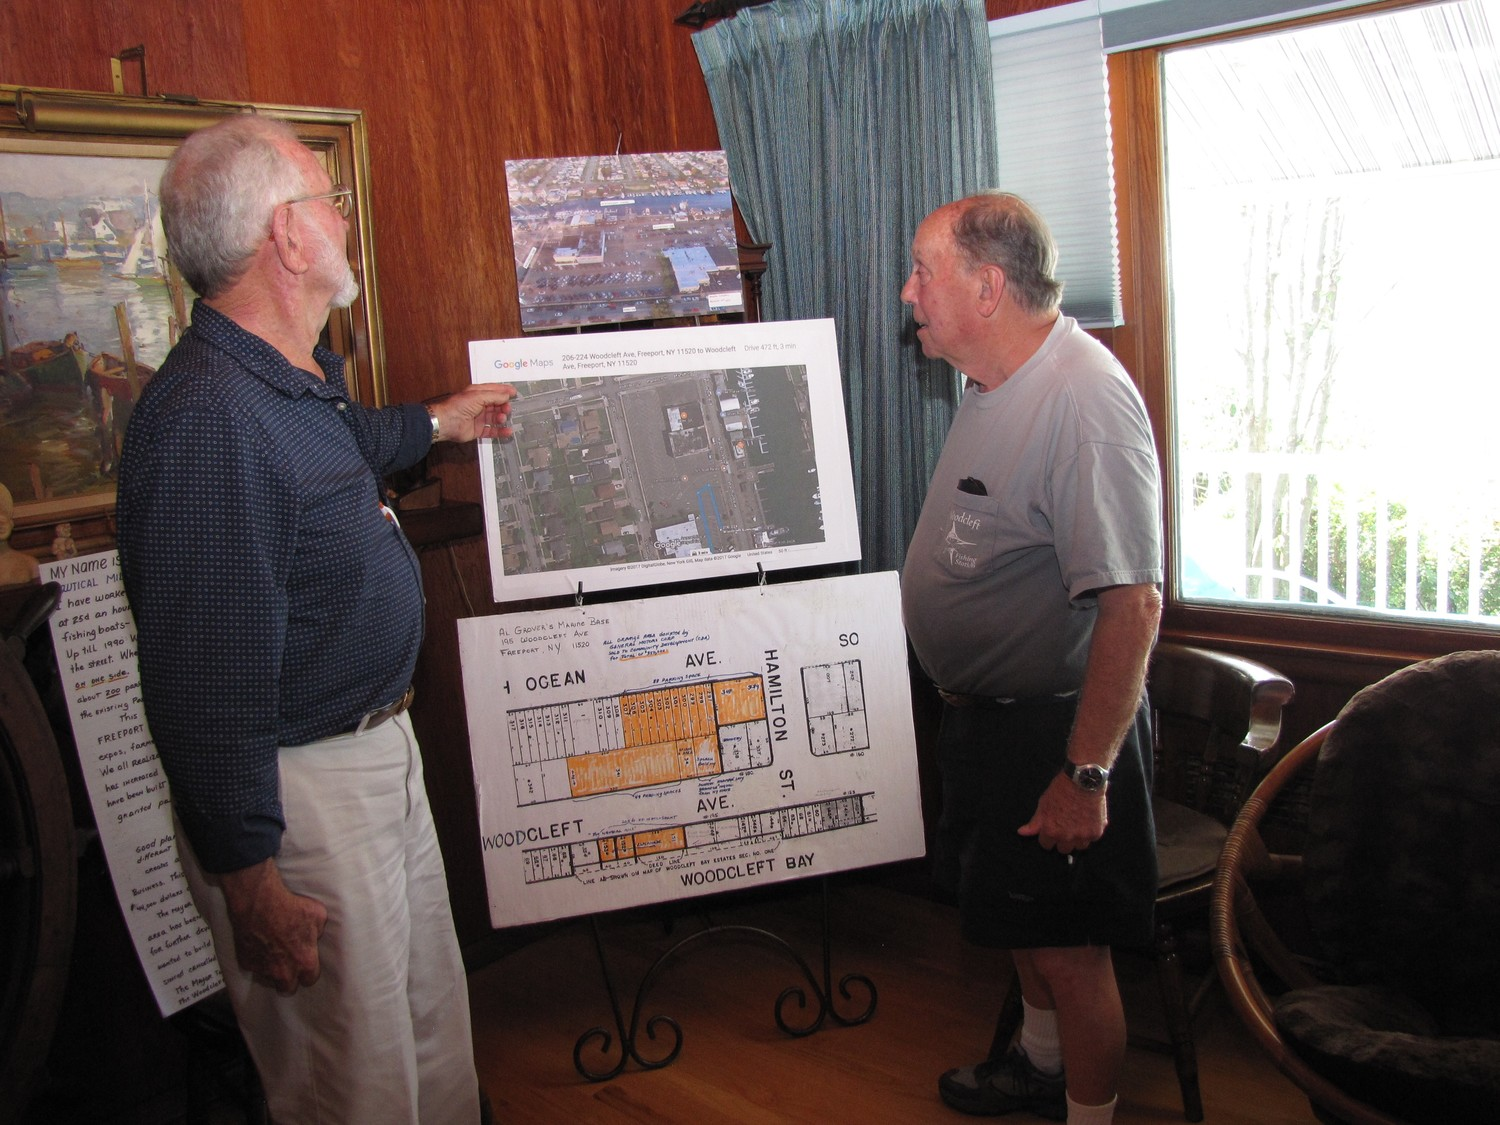 Freeporter Al Grover, left, reviewed the parking area that would be affected with Mike Kaland, owner of the Seahorse Gift Shop.